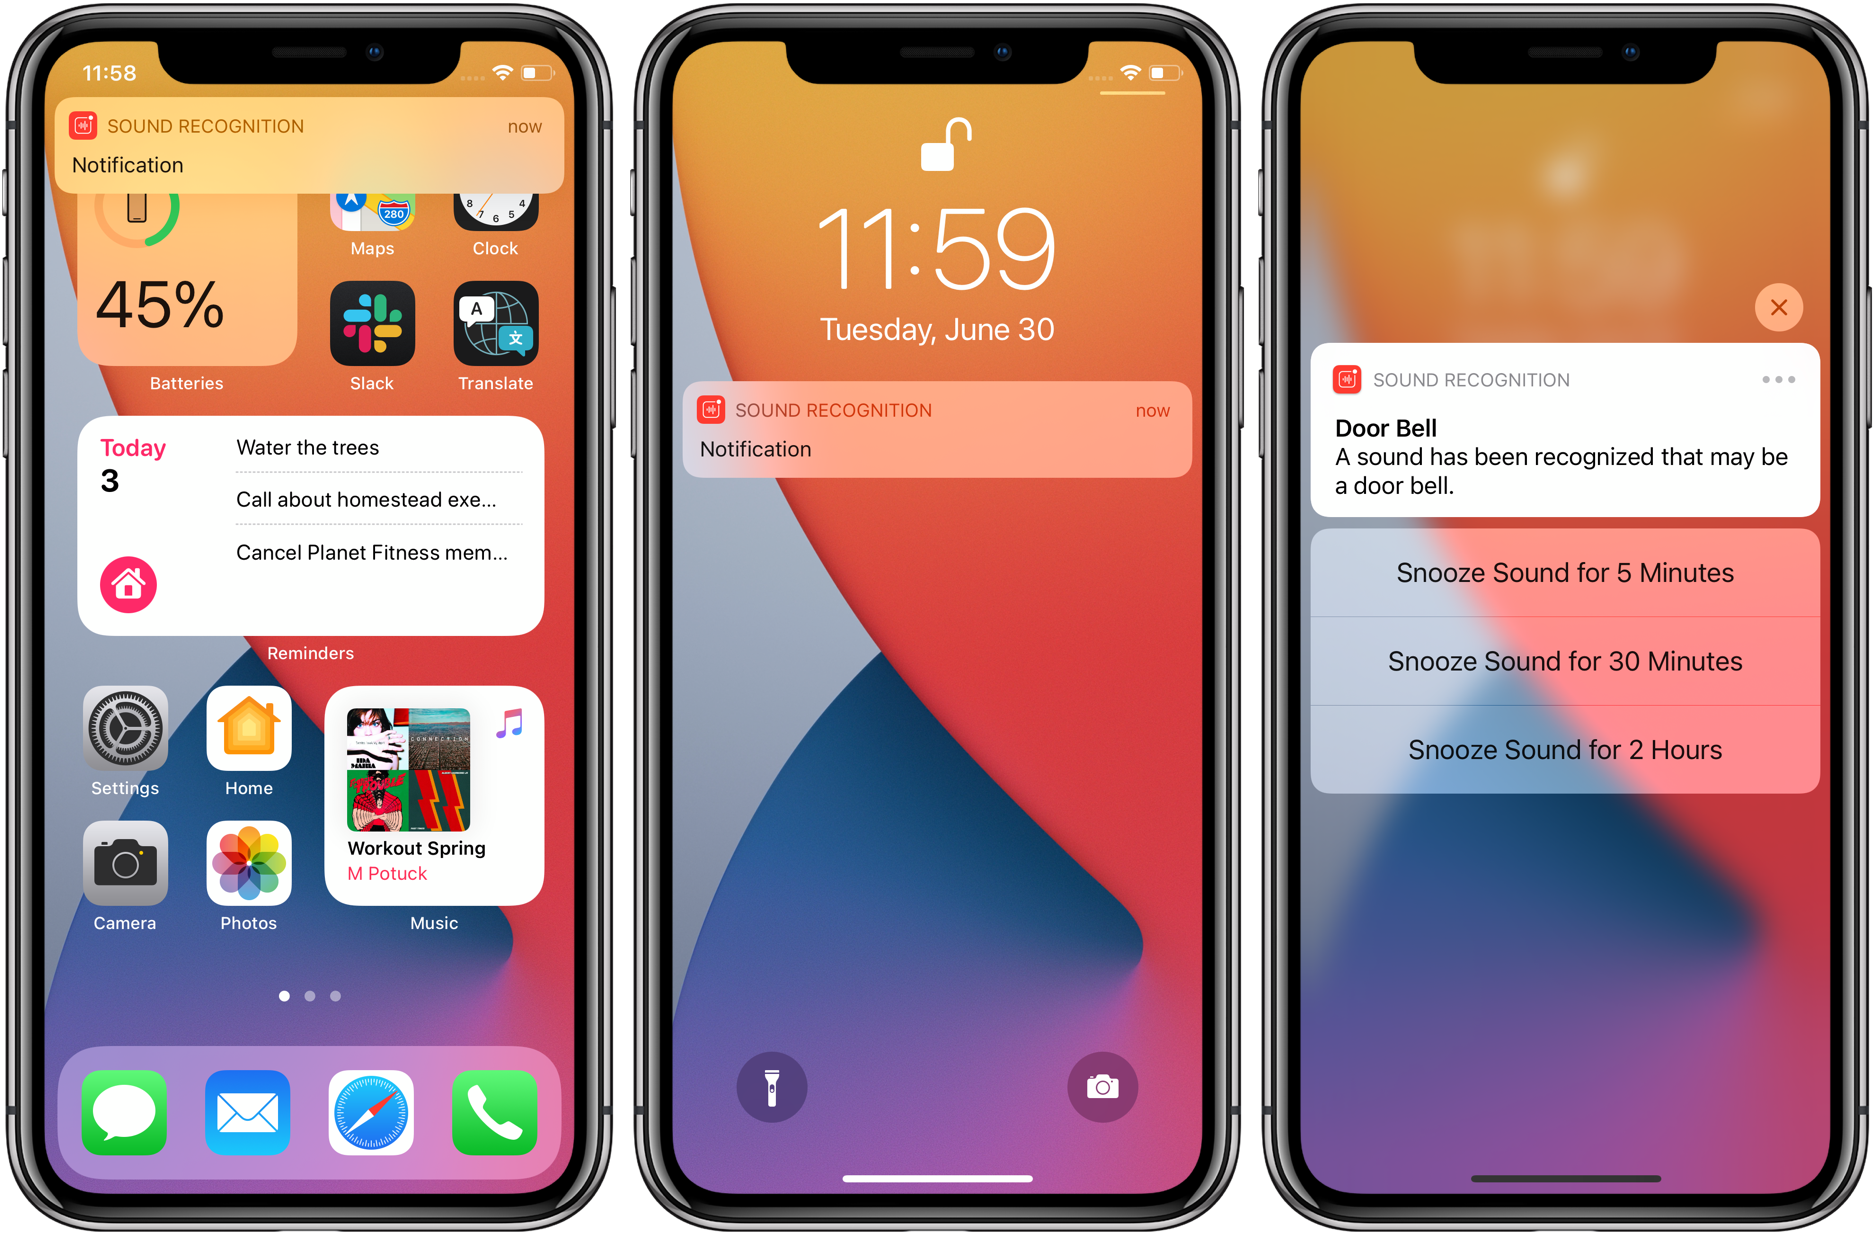 How to use iPhone sound recognition iOS 14 how alerts appear